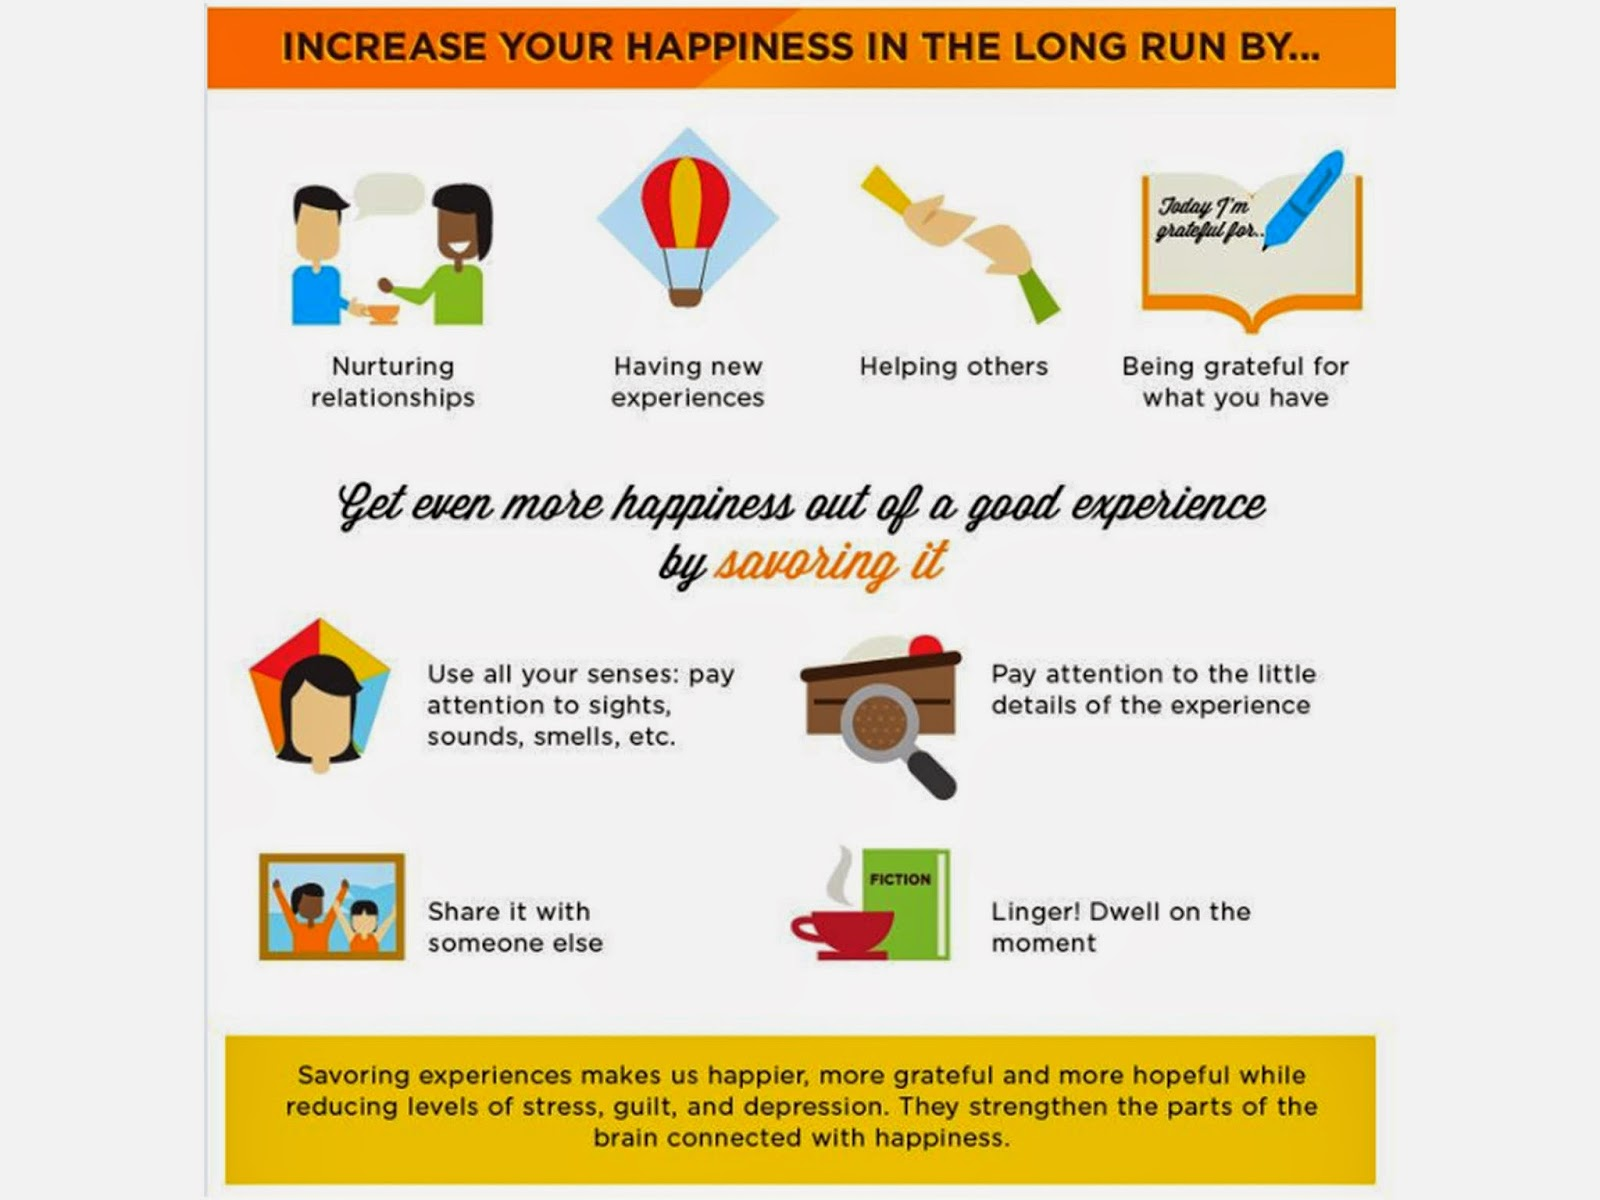 Facts about happiness 5